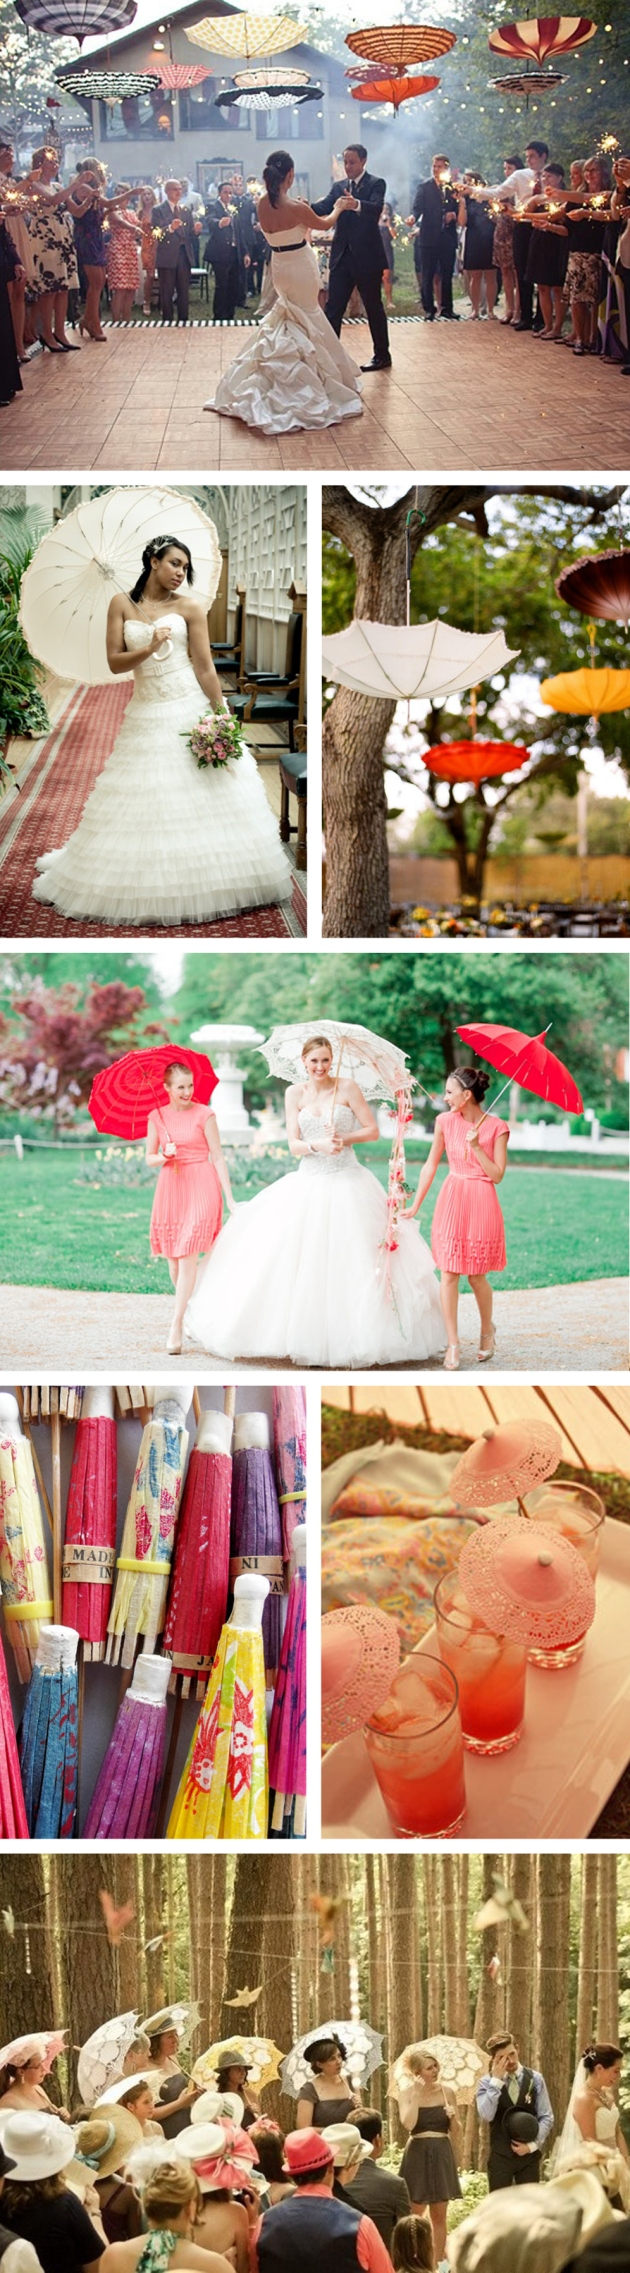 wedding parasols - hitchcock creative